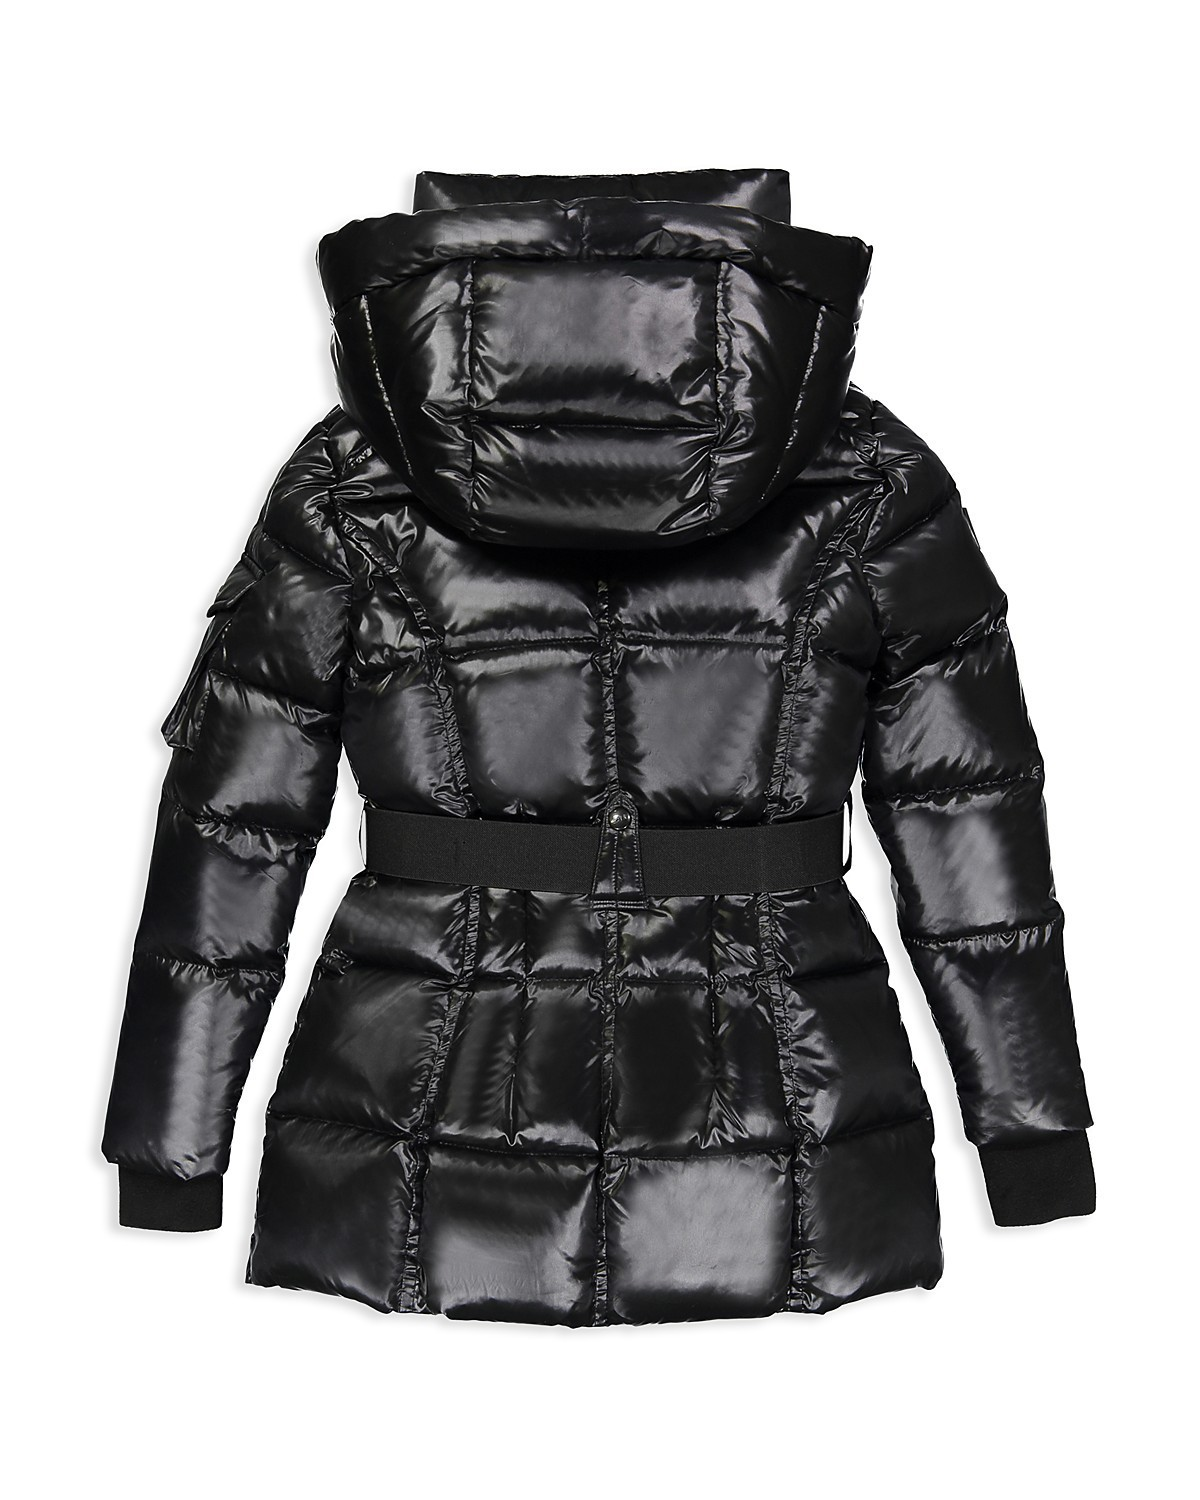 SAM NEW YORK soho Belted Puffer Jacket  送料関税込み